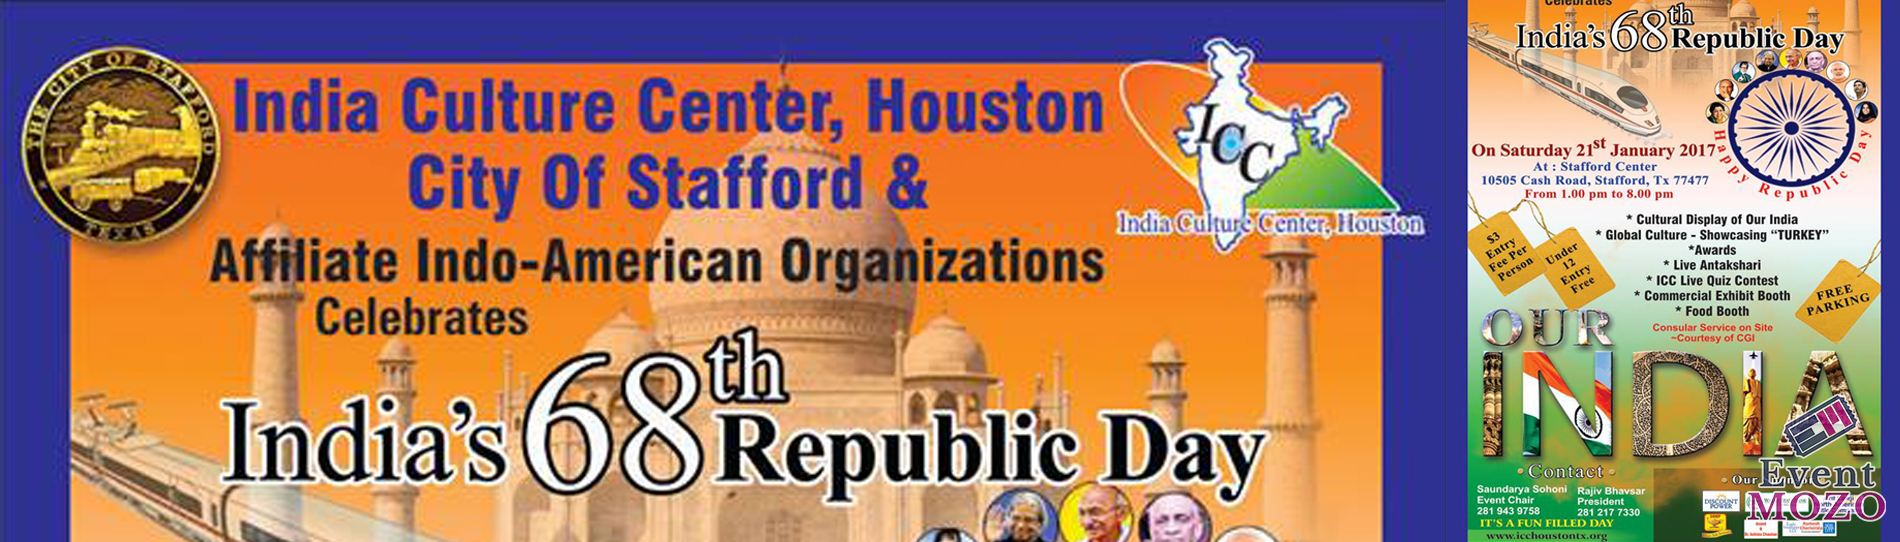 EventMozo India's 68th Republic Day